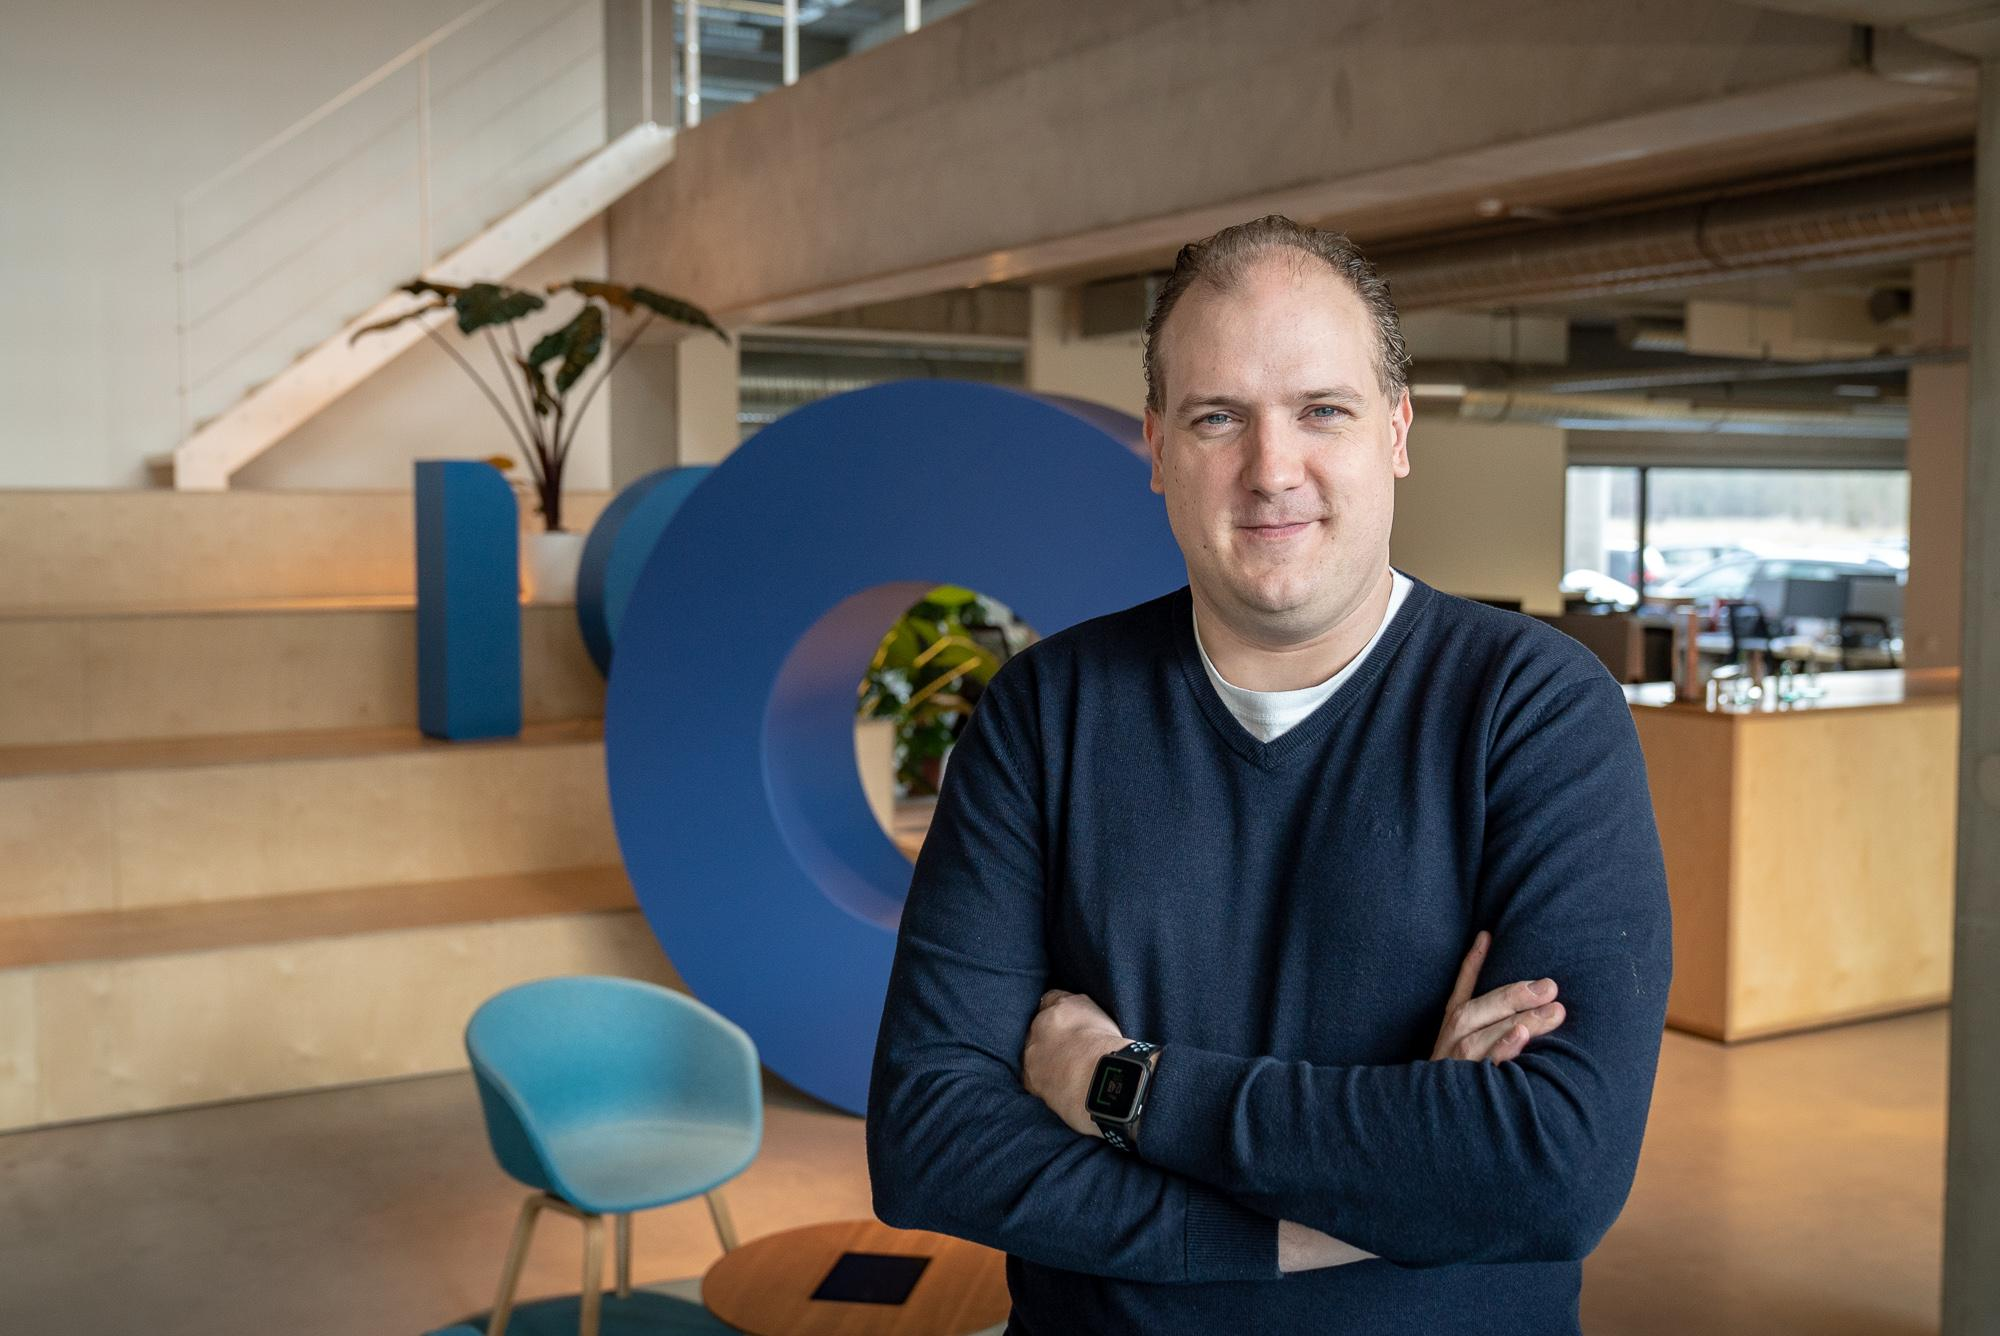 Tom Van Mierlo, Business Developer en partner bij digital agency Intracto